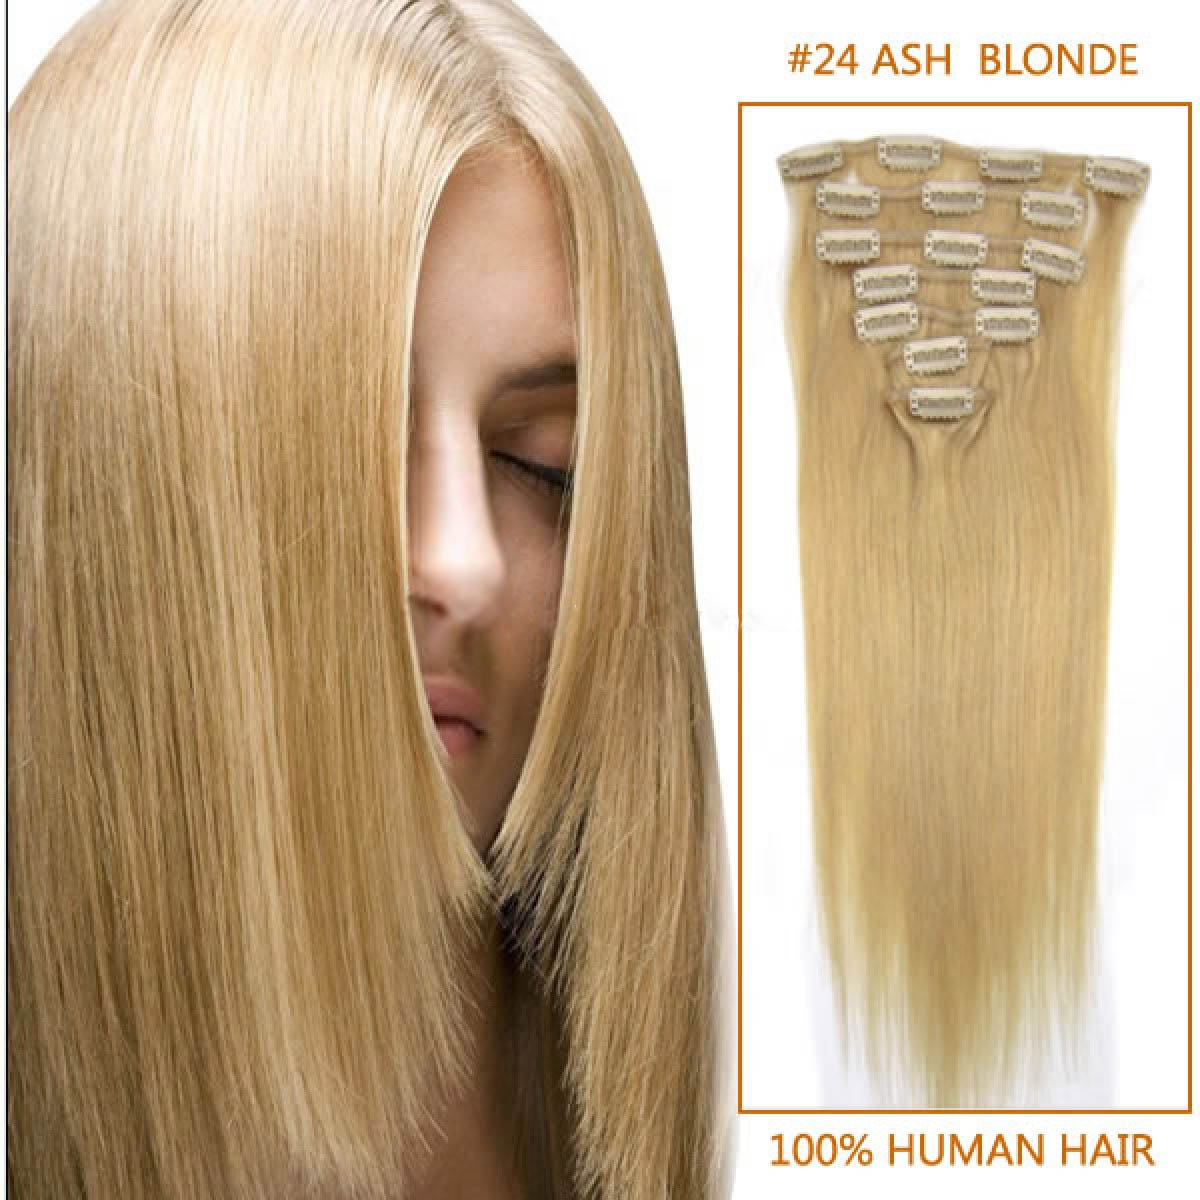 20 Inch 24 Ash Blonde Clip In Remy Human Hair Extensions 7pcs